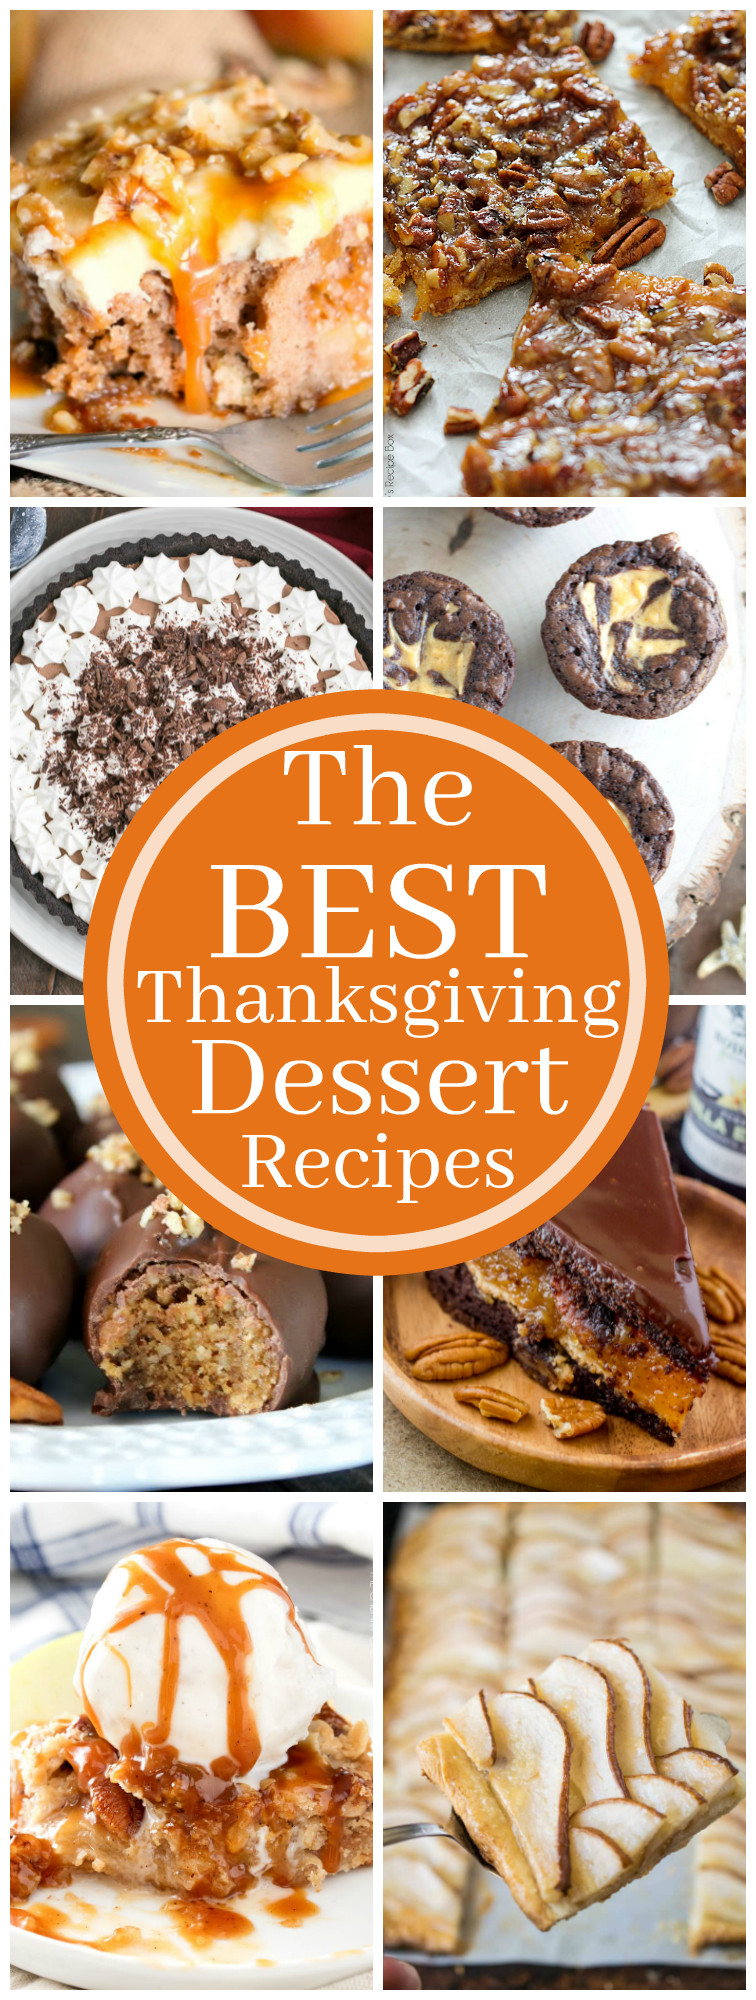 Top Thanksgiving Desserts  The Best Thanksgiving Dessert Recipes The Chunky Chef